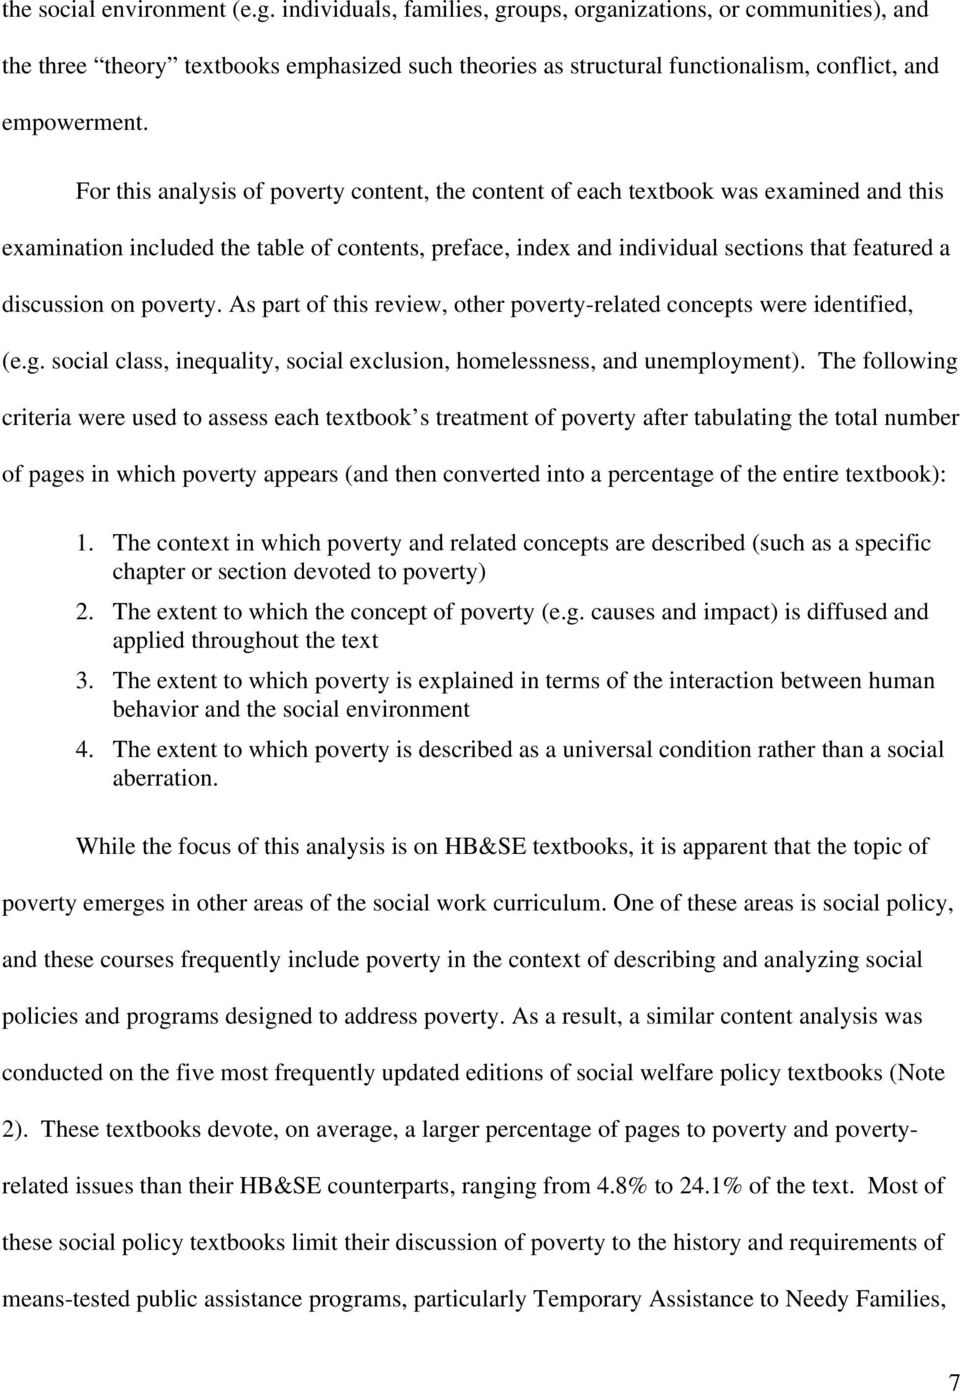 For this analysis of poverty content, the content of each textbook was examined and this examination included the table of contents, preface, index and individual sections that featured a discussion